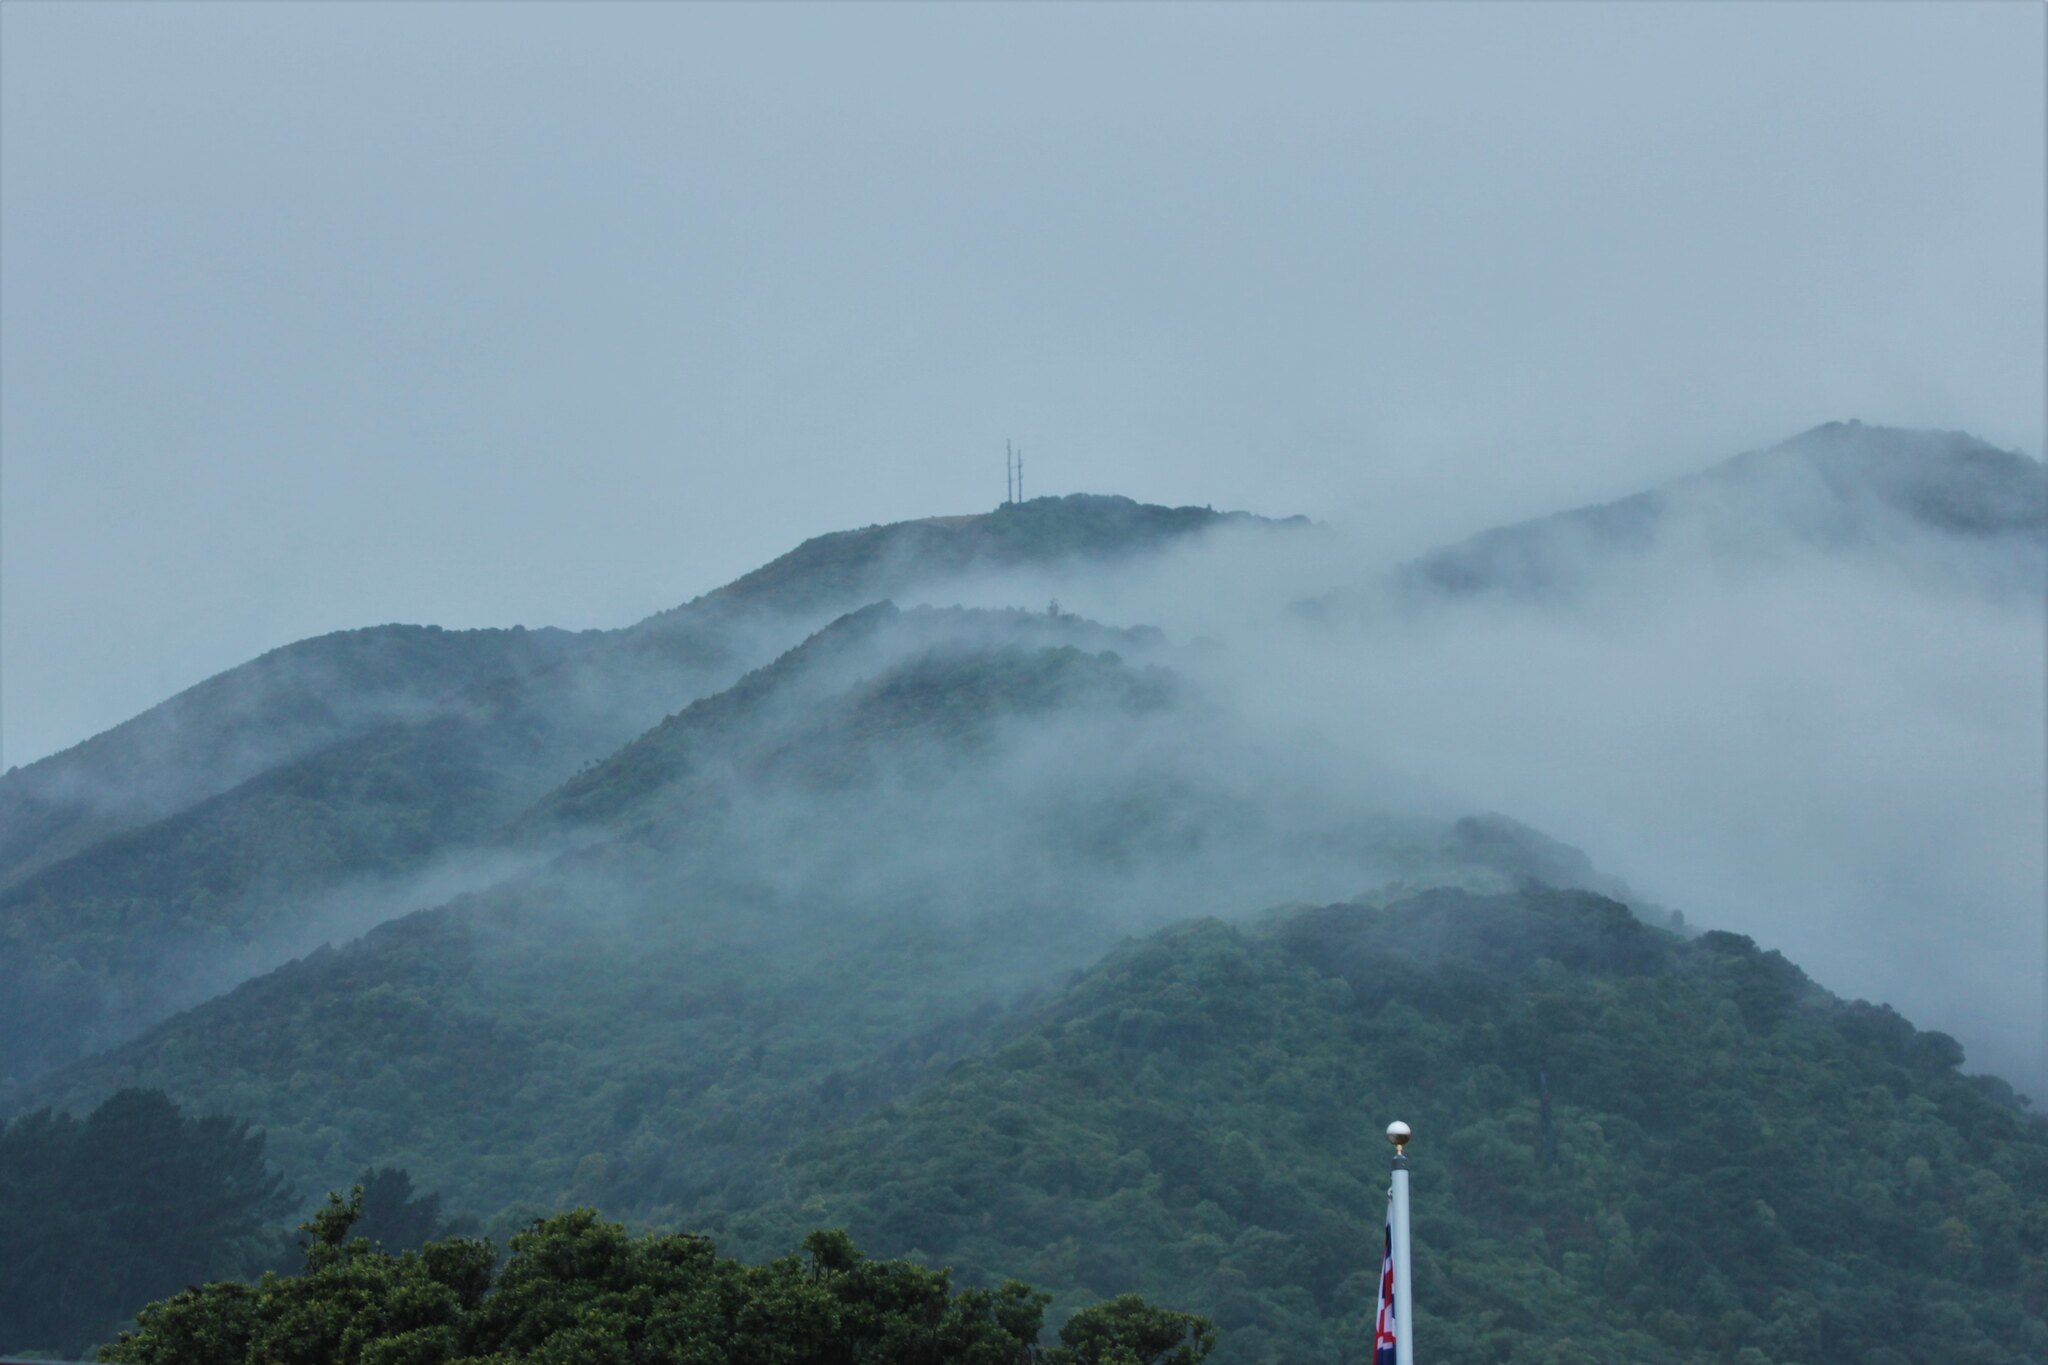 IMG_2447 (Mist, inclimant weather)